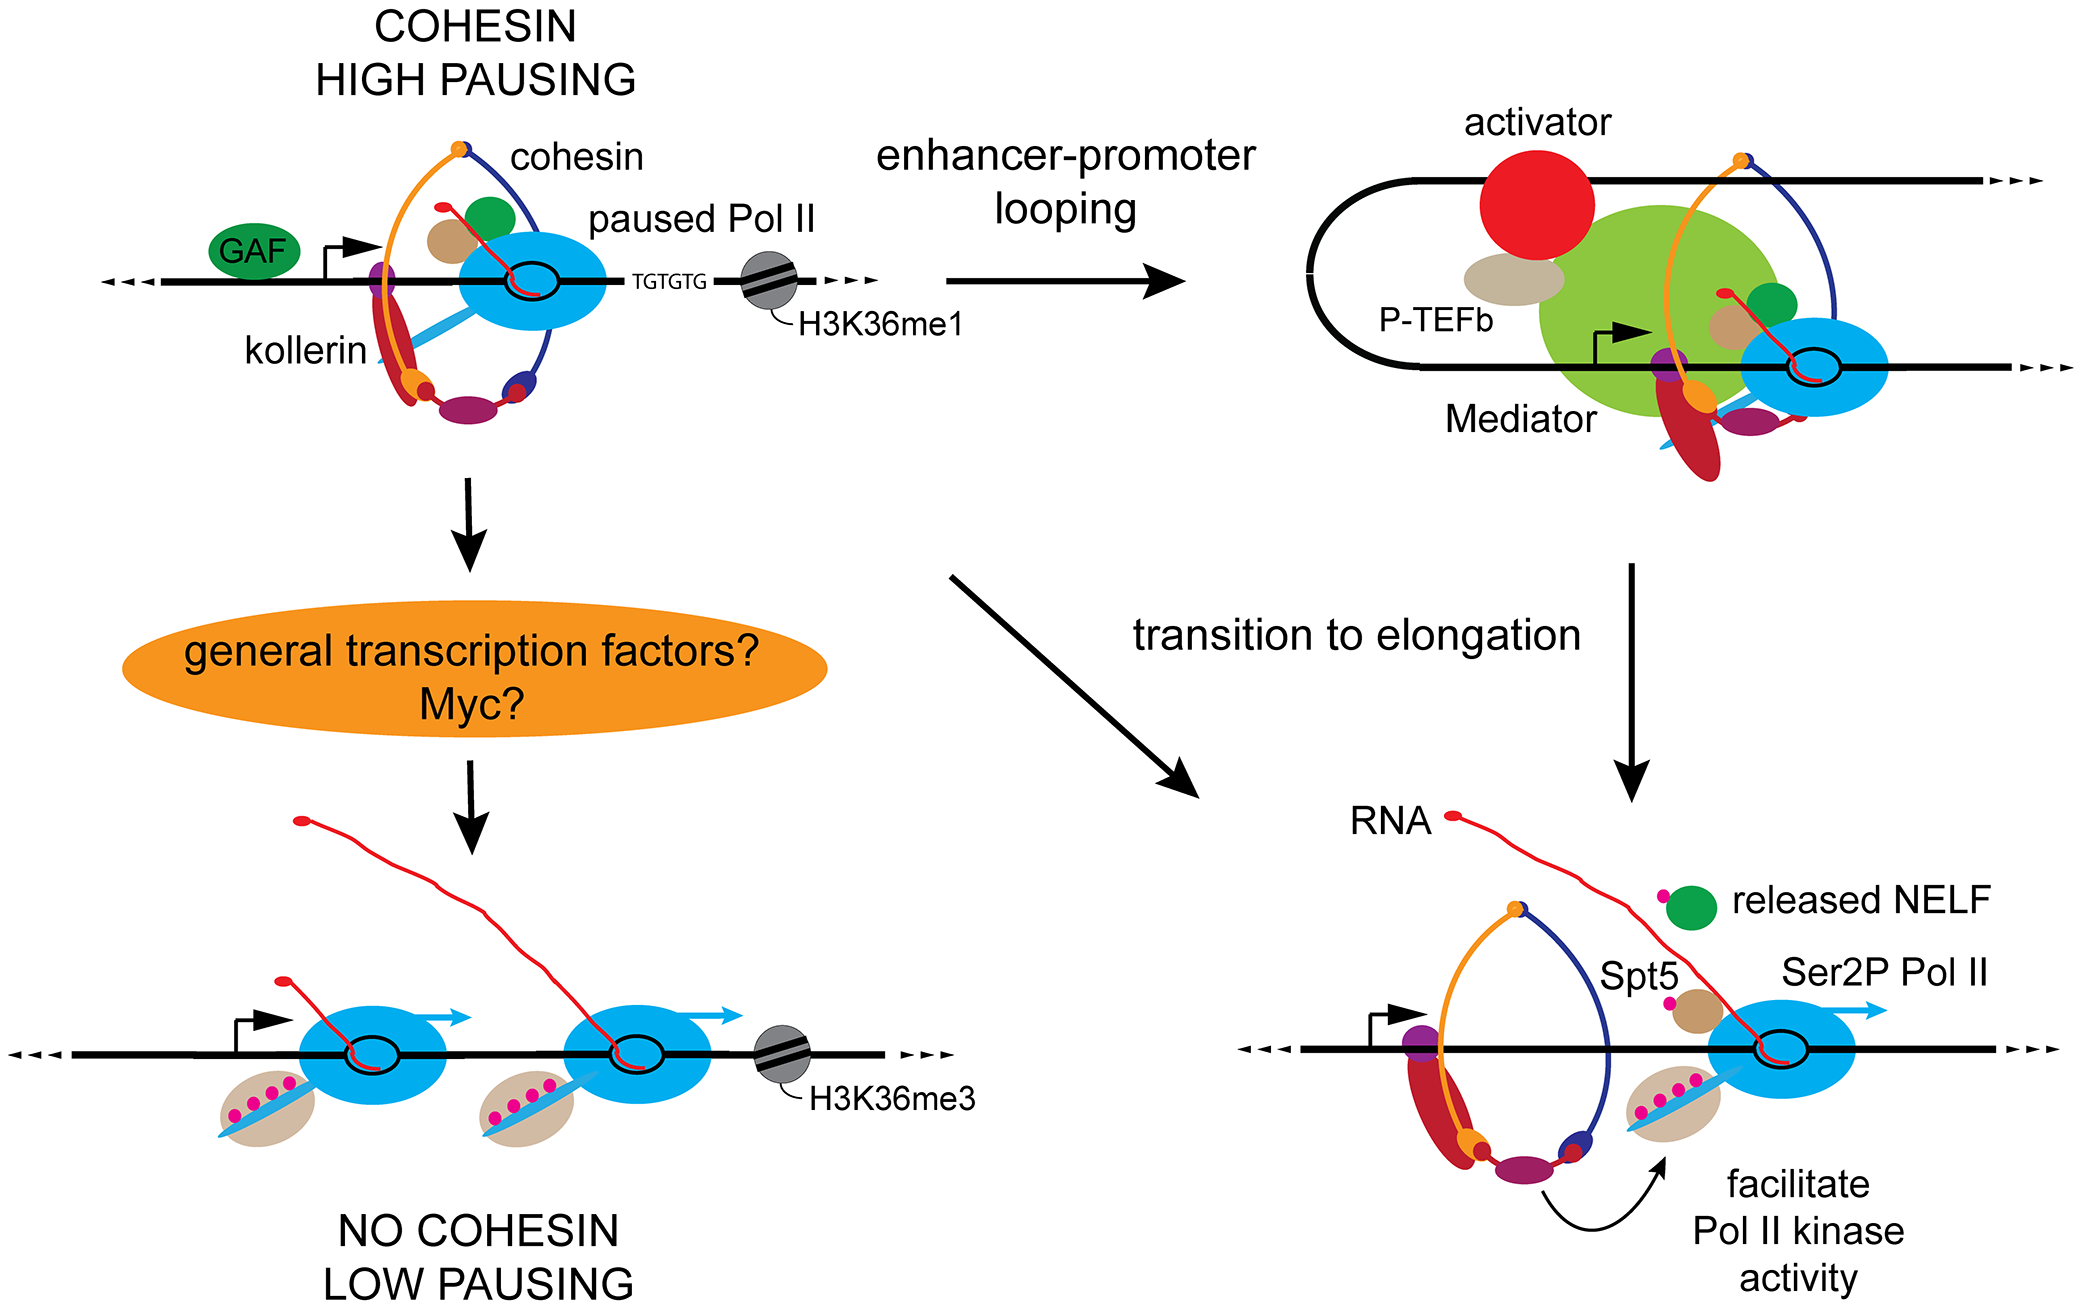 Key features of cohesin-binding genes and proposed roles for cohesin in genome-wide control of Pol II activity.